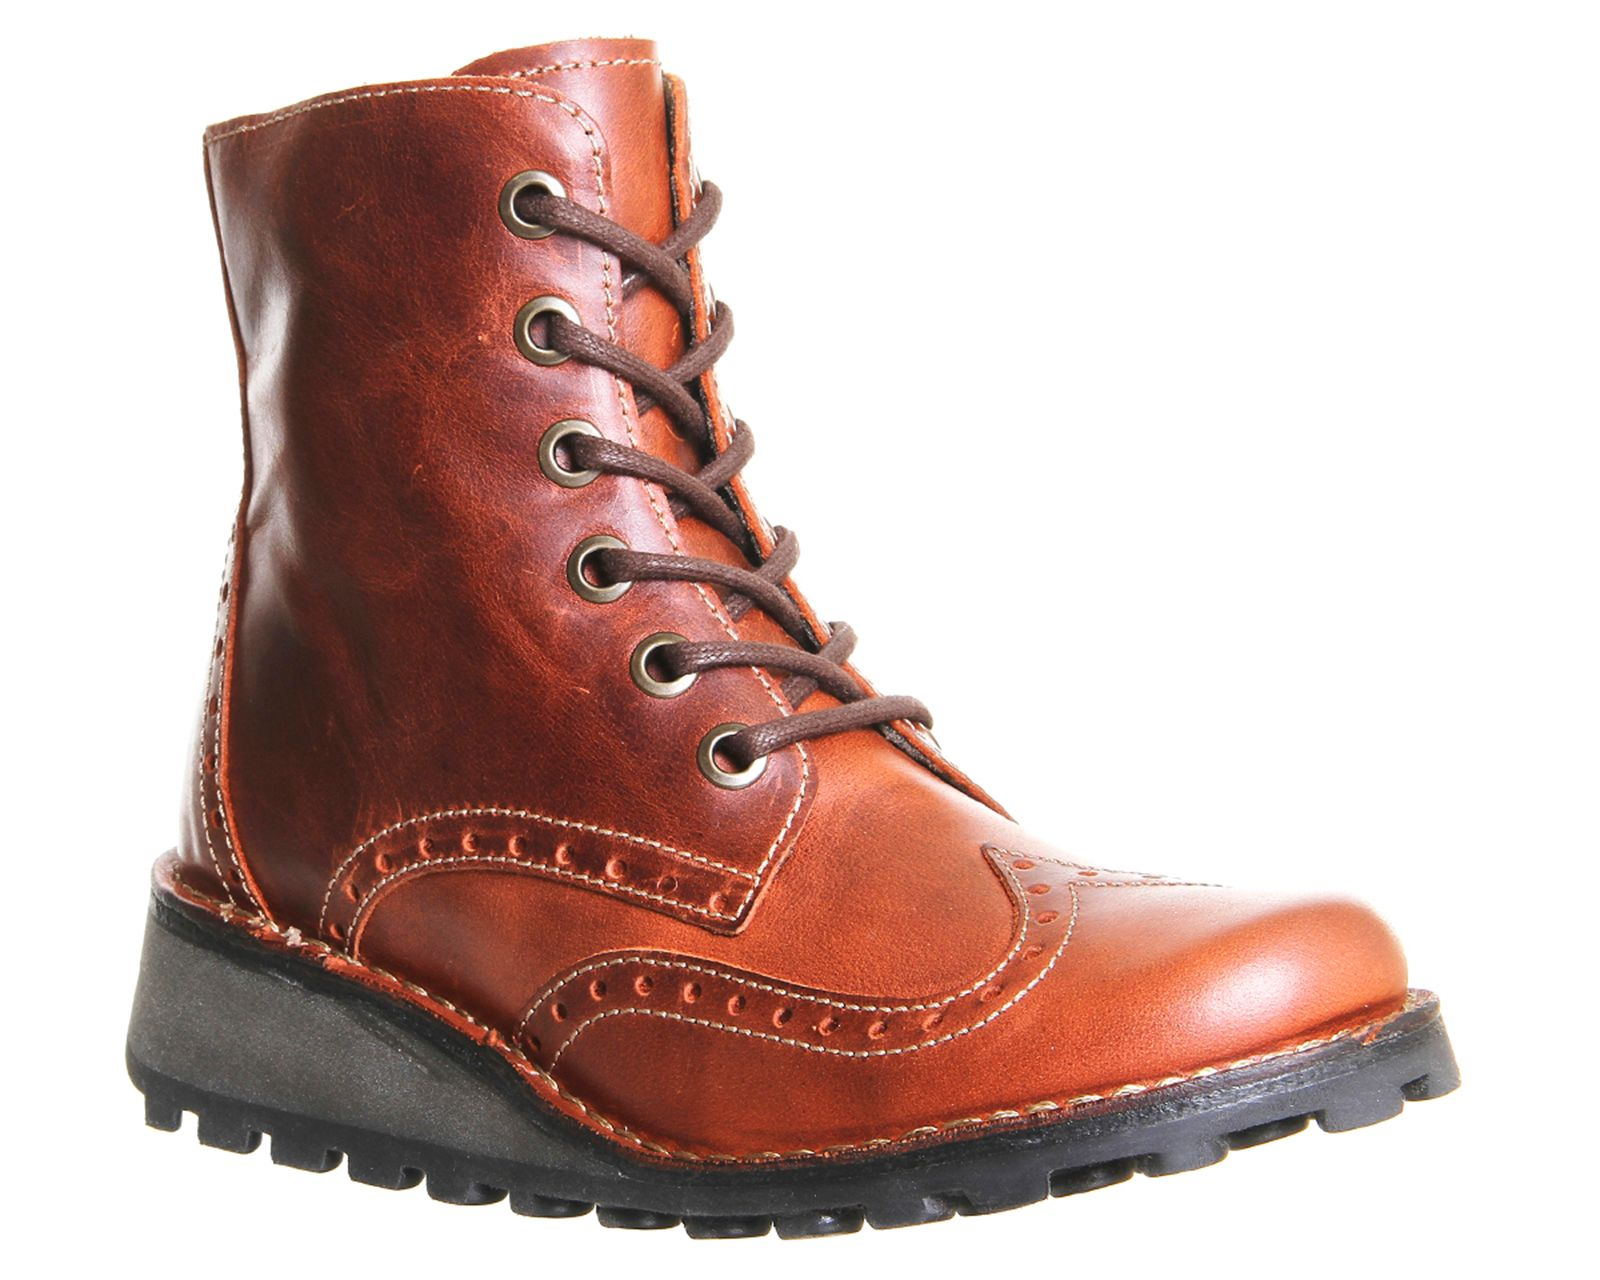 Fly Fly Marl lace up boots, Brick